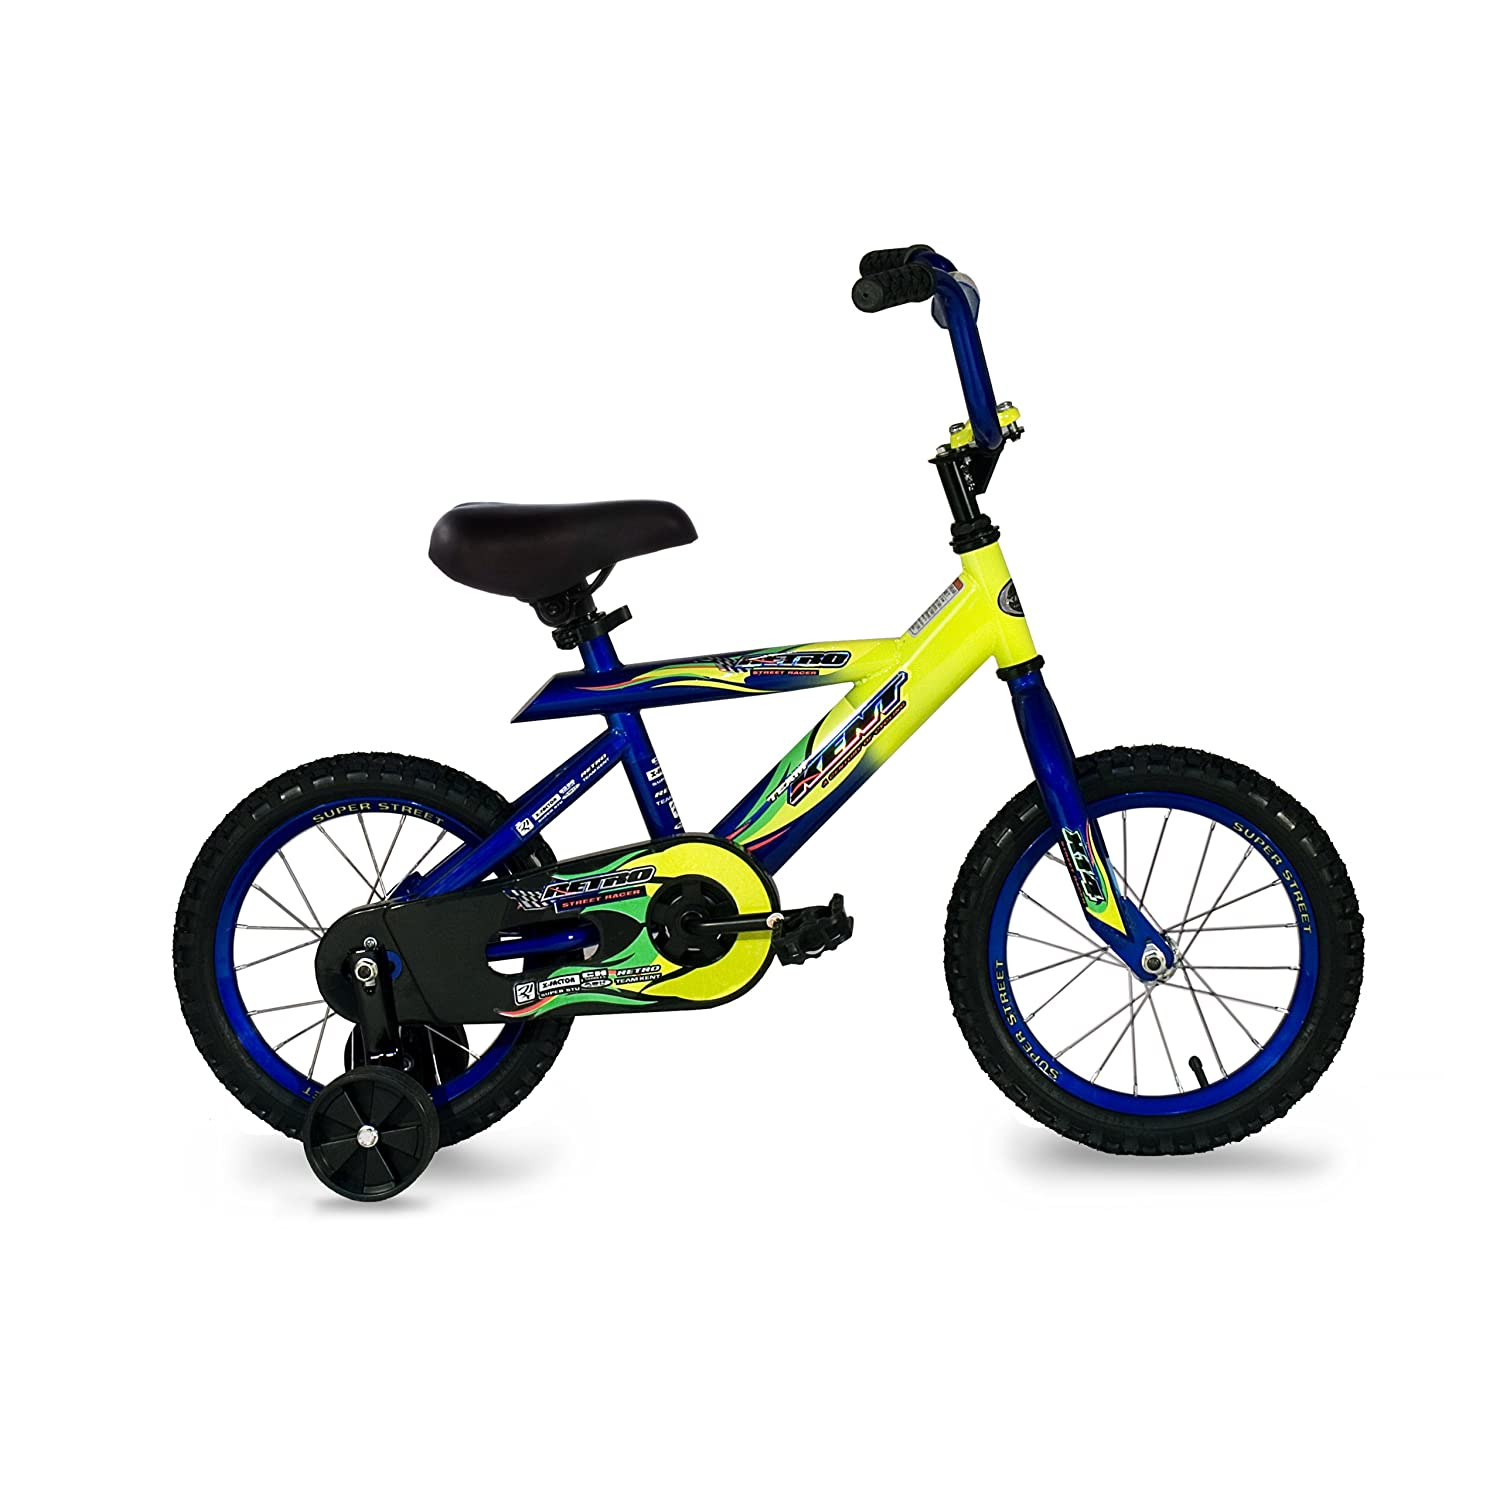 Boys Bikes 14 Inch Kent Retro Boy s Bike Inch